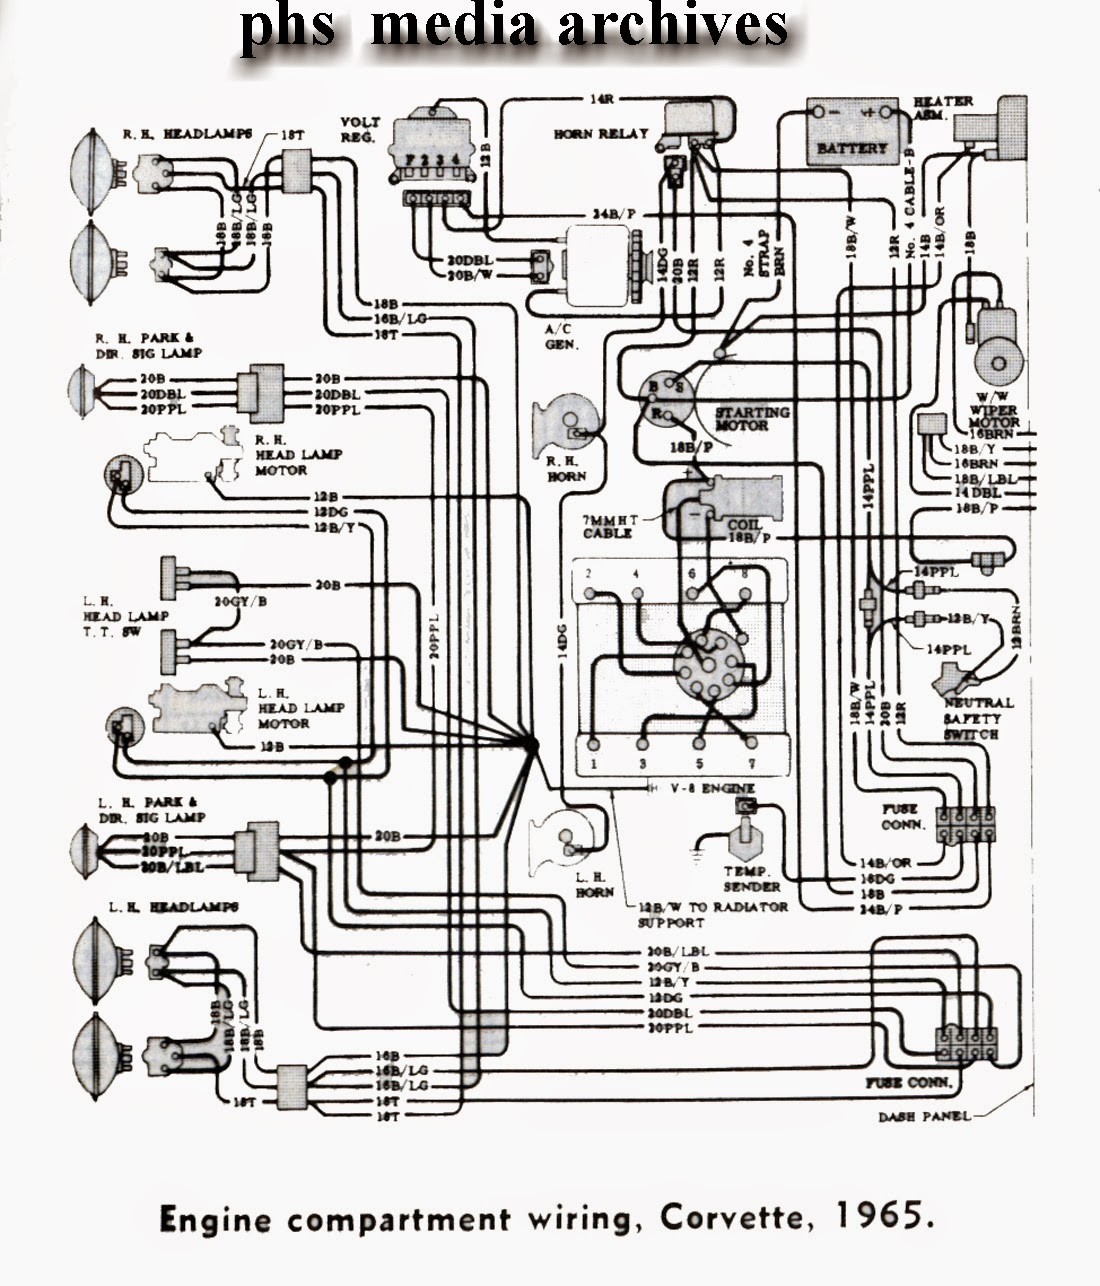 nascar wiring diagram search wiring diagram nascar wiring diagrams [ 1100 x 1286 Pixel ]